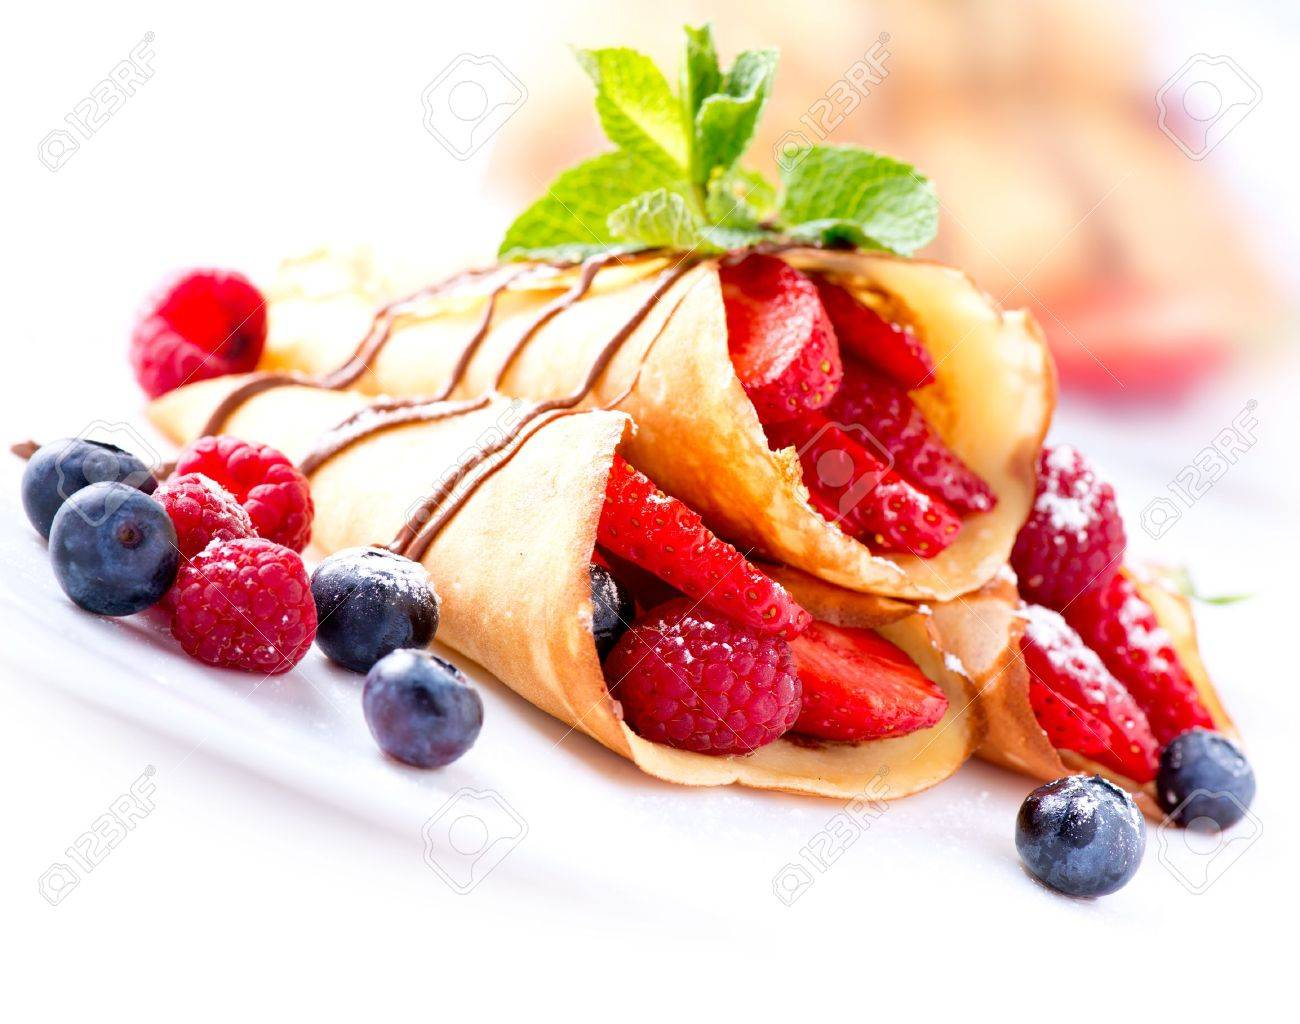 Crepes With Berries over White - 18697280